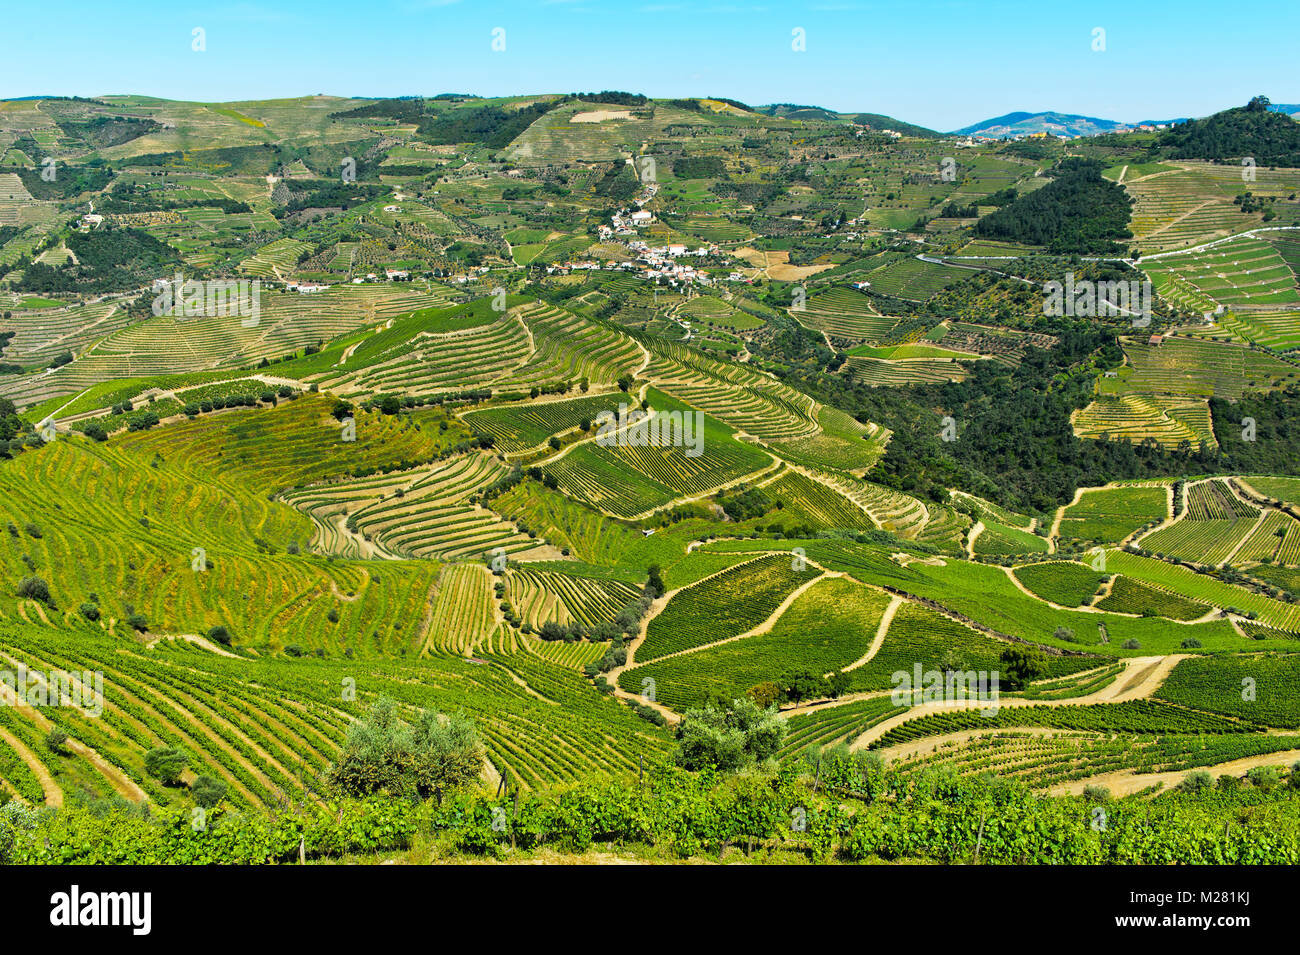 Vineyard region Alto Douro in the valley of the Rio Pinhao, Portugal - Stock Image